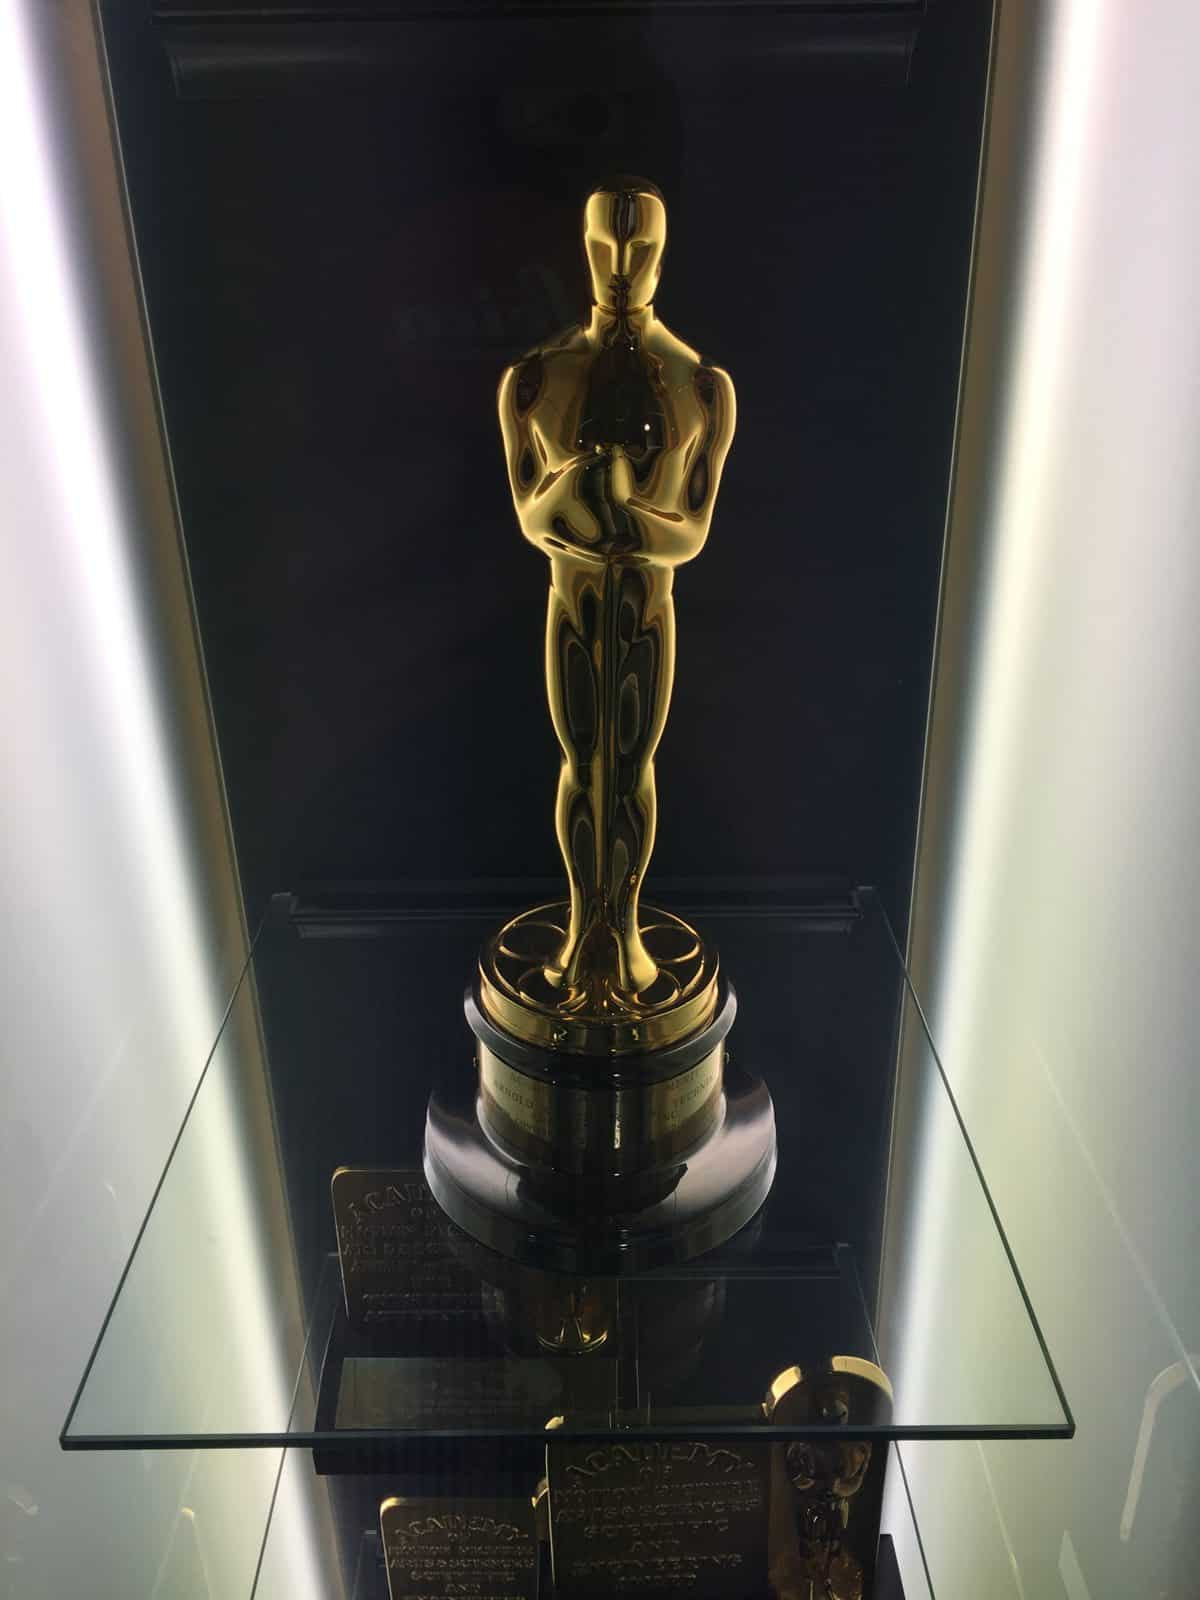 2002 Academy Award for innovation of camera systems